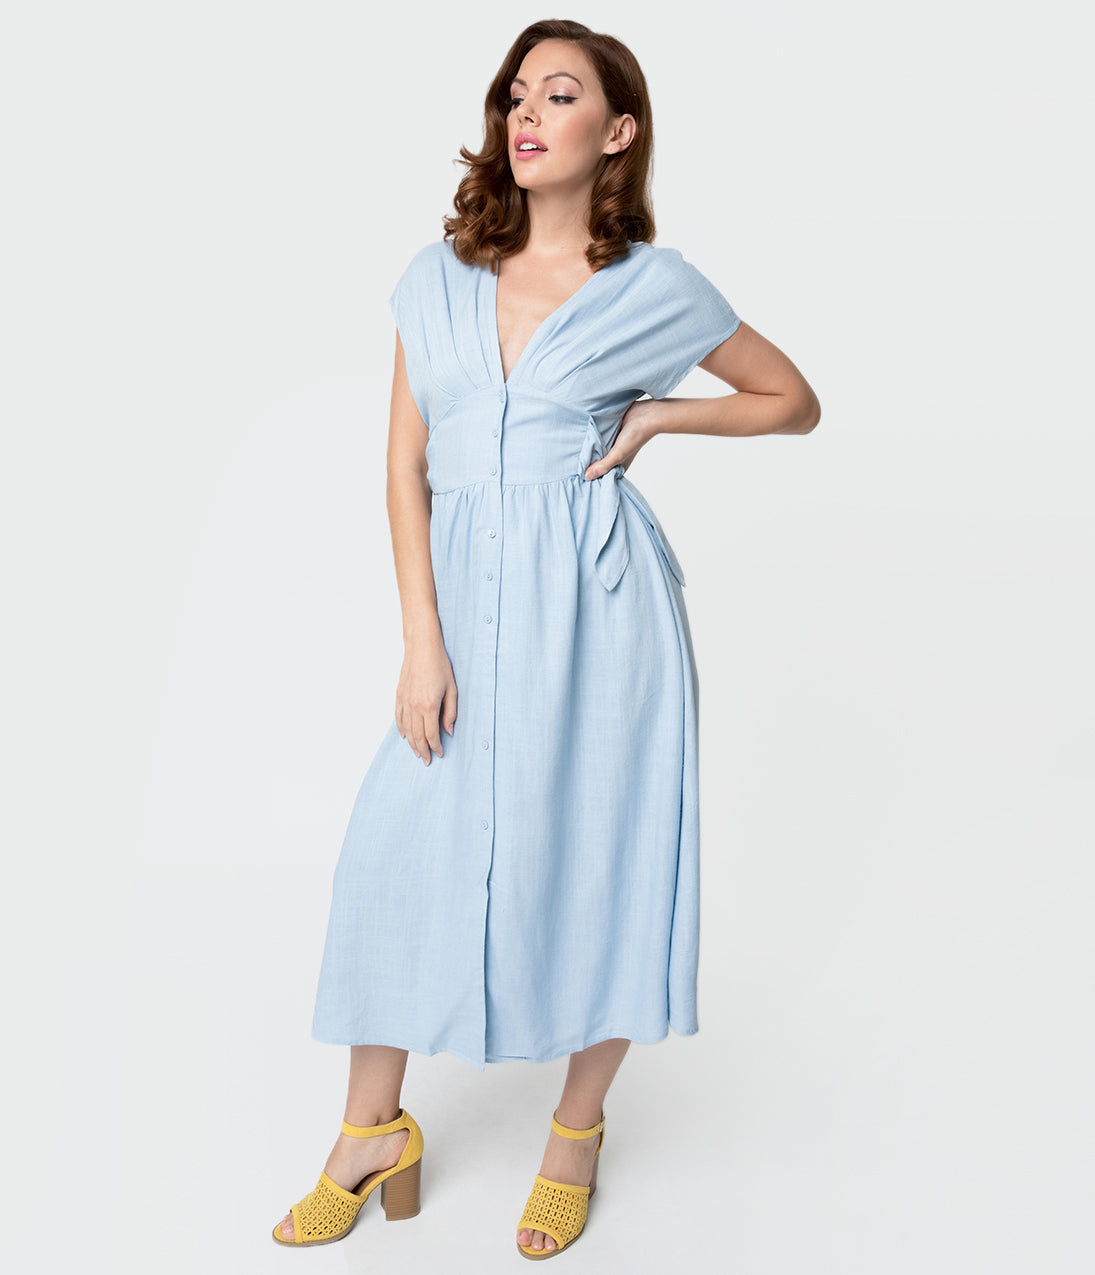 1930s Costumes- Bride of Frankenstein, Betty Boop, Olive Oyl, Bonnie & Clyde 1930S Style Light Blue Linen Button Up Shirtdress $68.00 AT vintagedancer.com